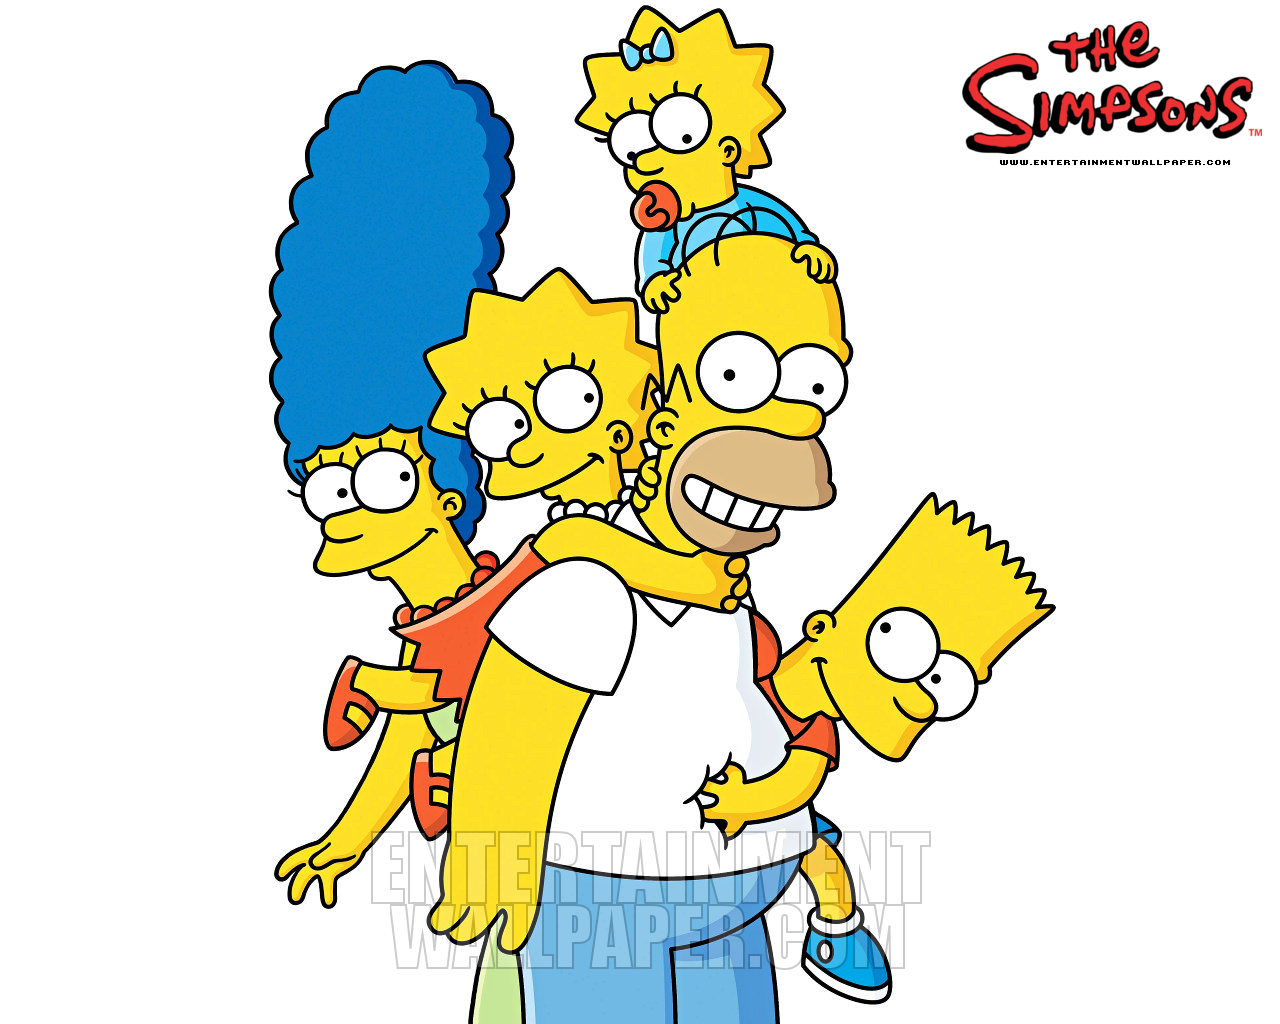 The Simpsons - Simpsons Png - HD Wallpaper